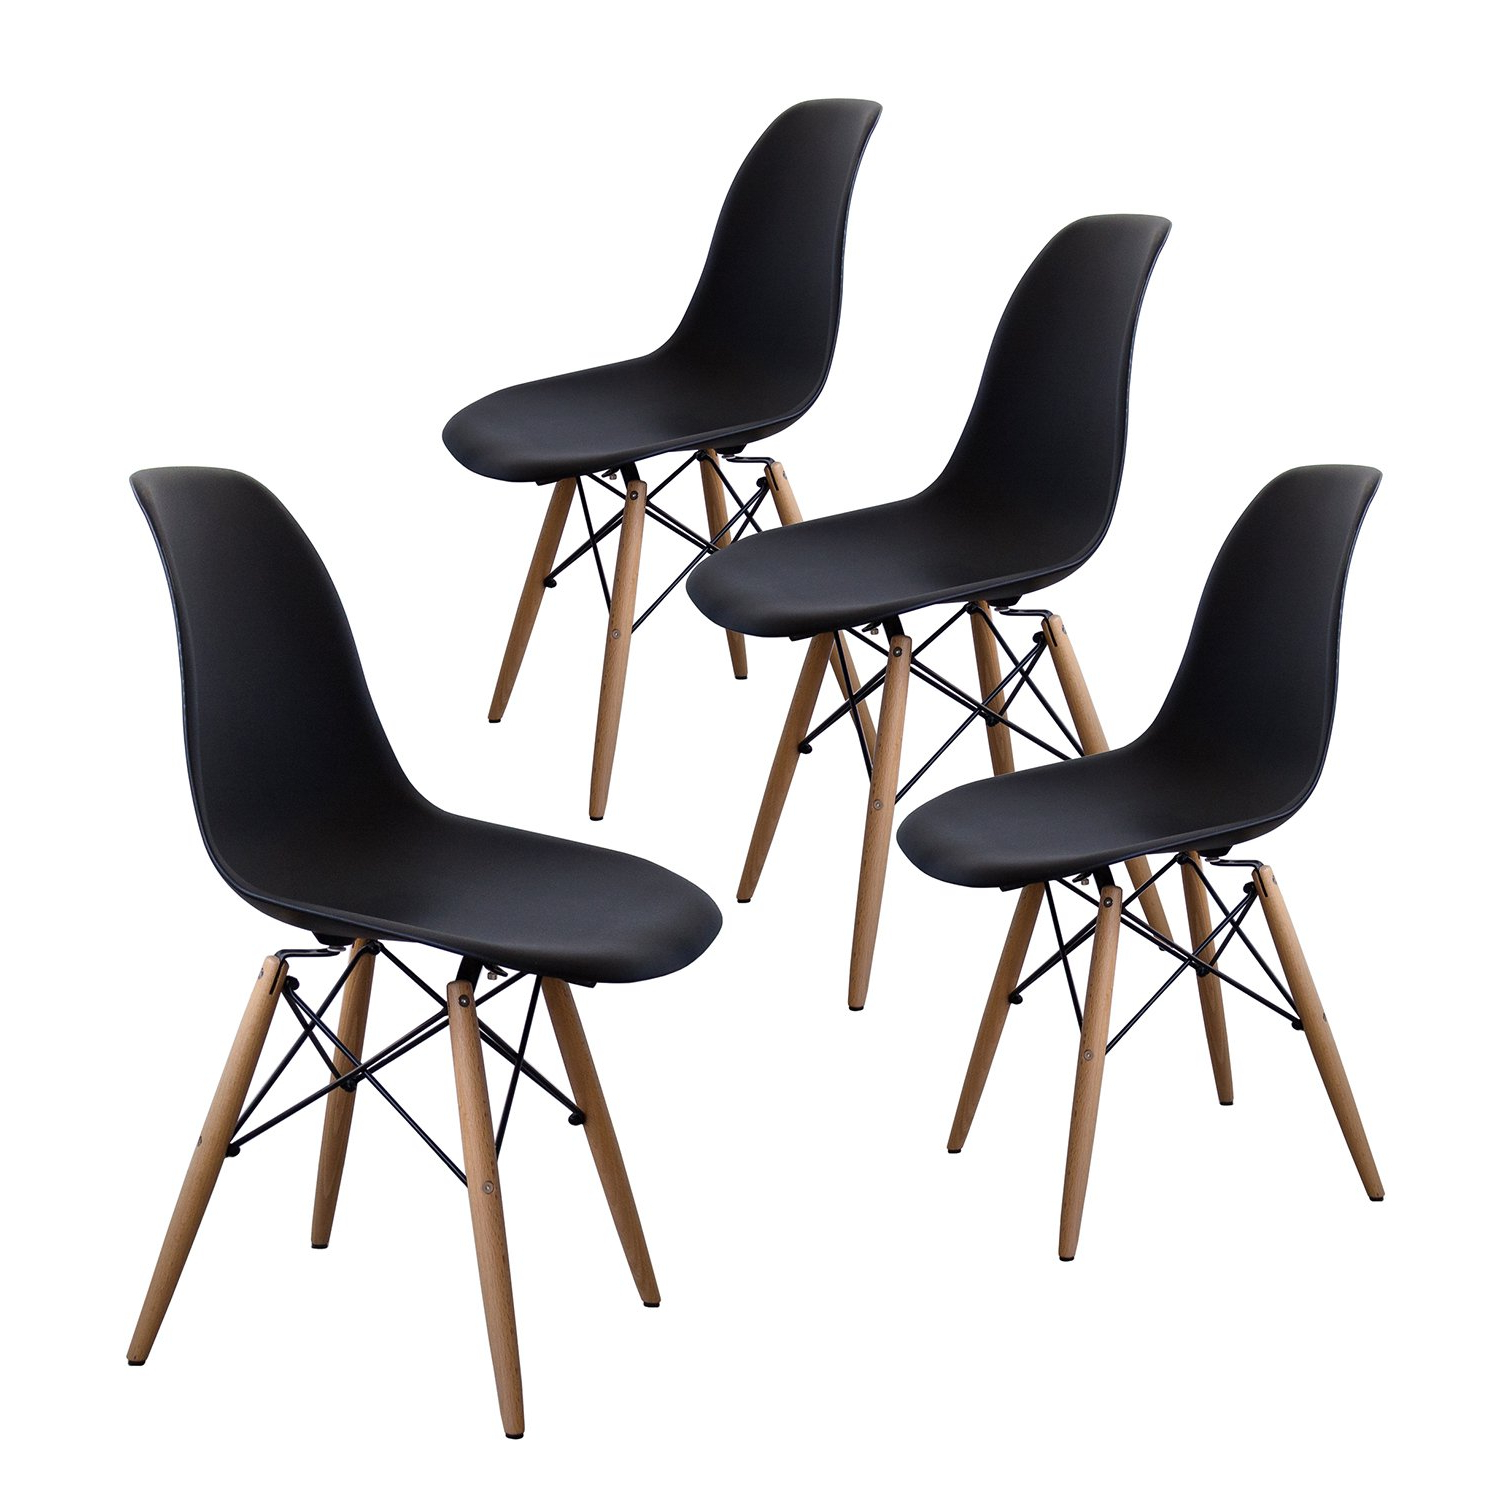 Most Recent Buschman Set Of Four Black Eames Style Mid Century Modern Dining Room  Wooden Legs Chairs Intended For Eames Style Dining Tables With Wooden Legs (Gallery 15 of 30)